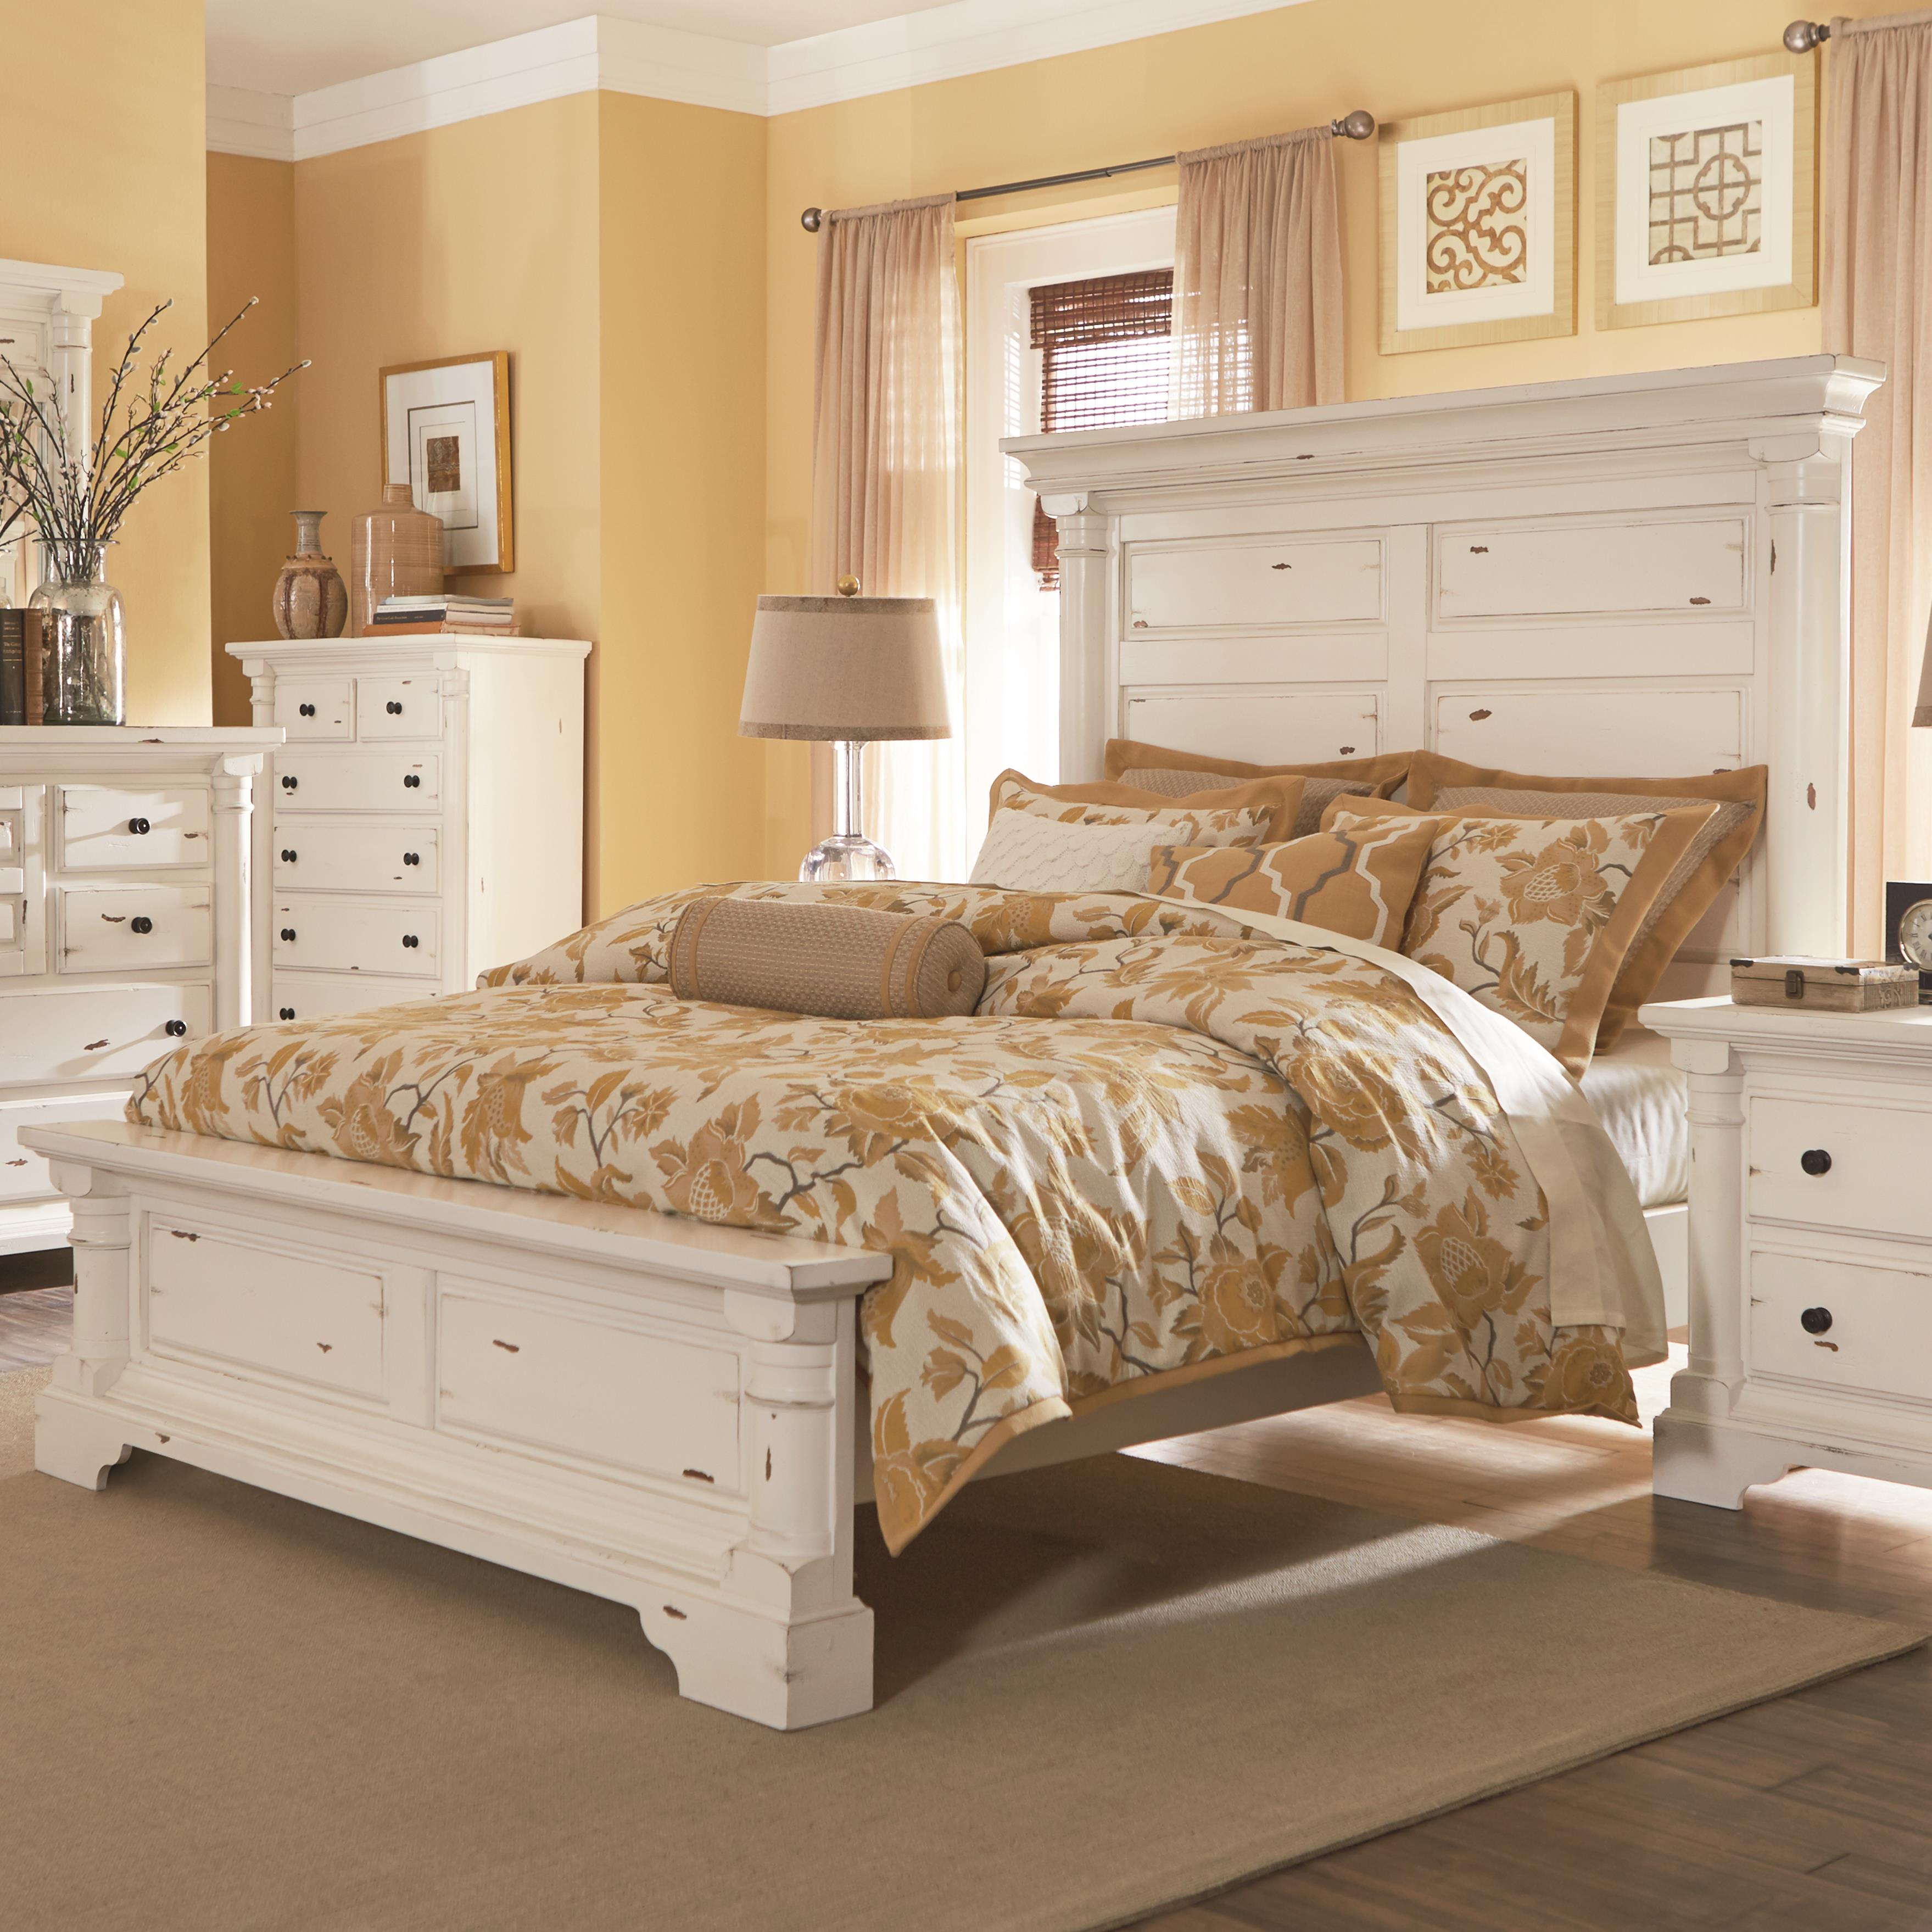 Progressive Furniture Gramercy Park King Panel Bed - Item Number: P661-94+97+78